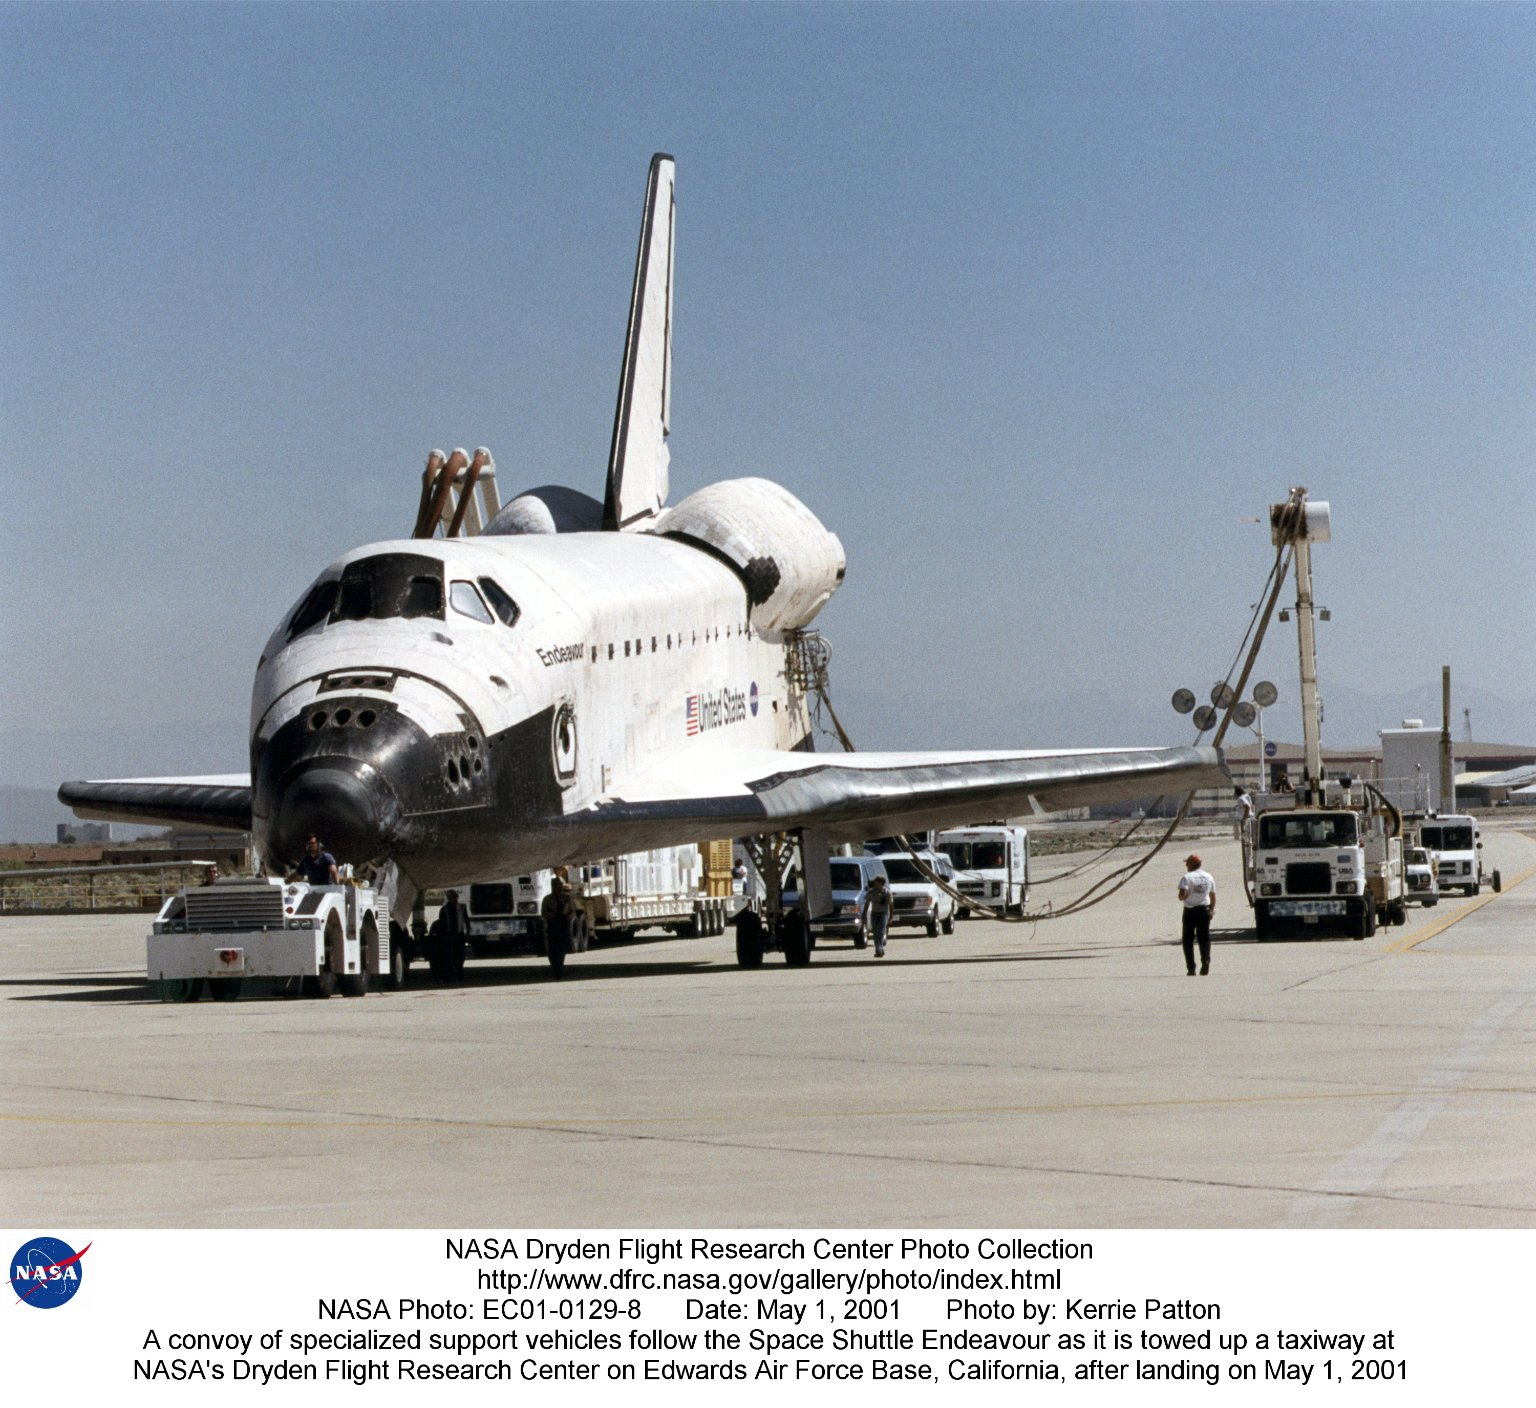 A convoy of specialized support vehicles follow the Space Shuttle Endeavour as it is towed up a taxi